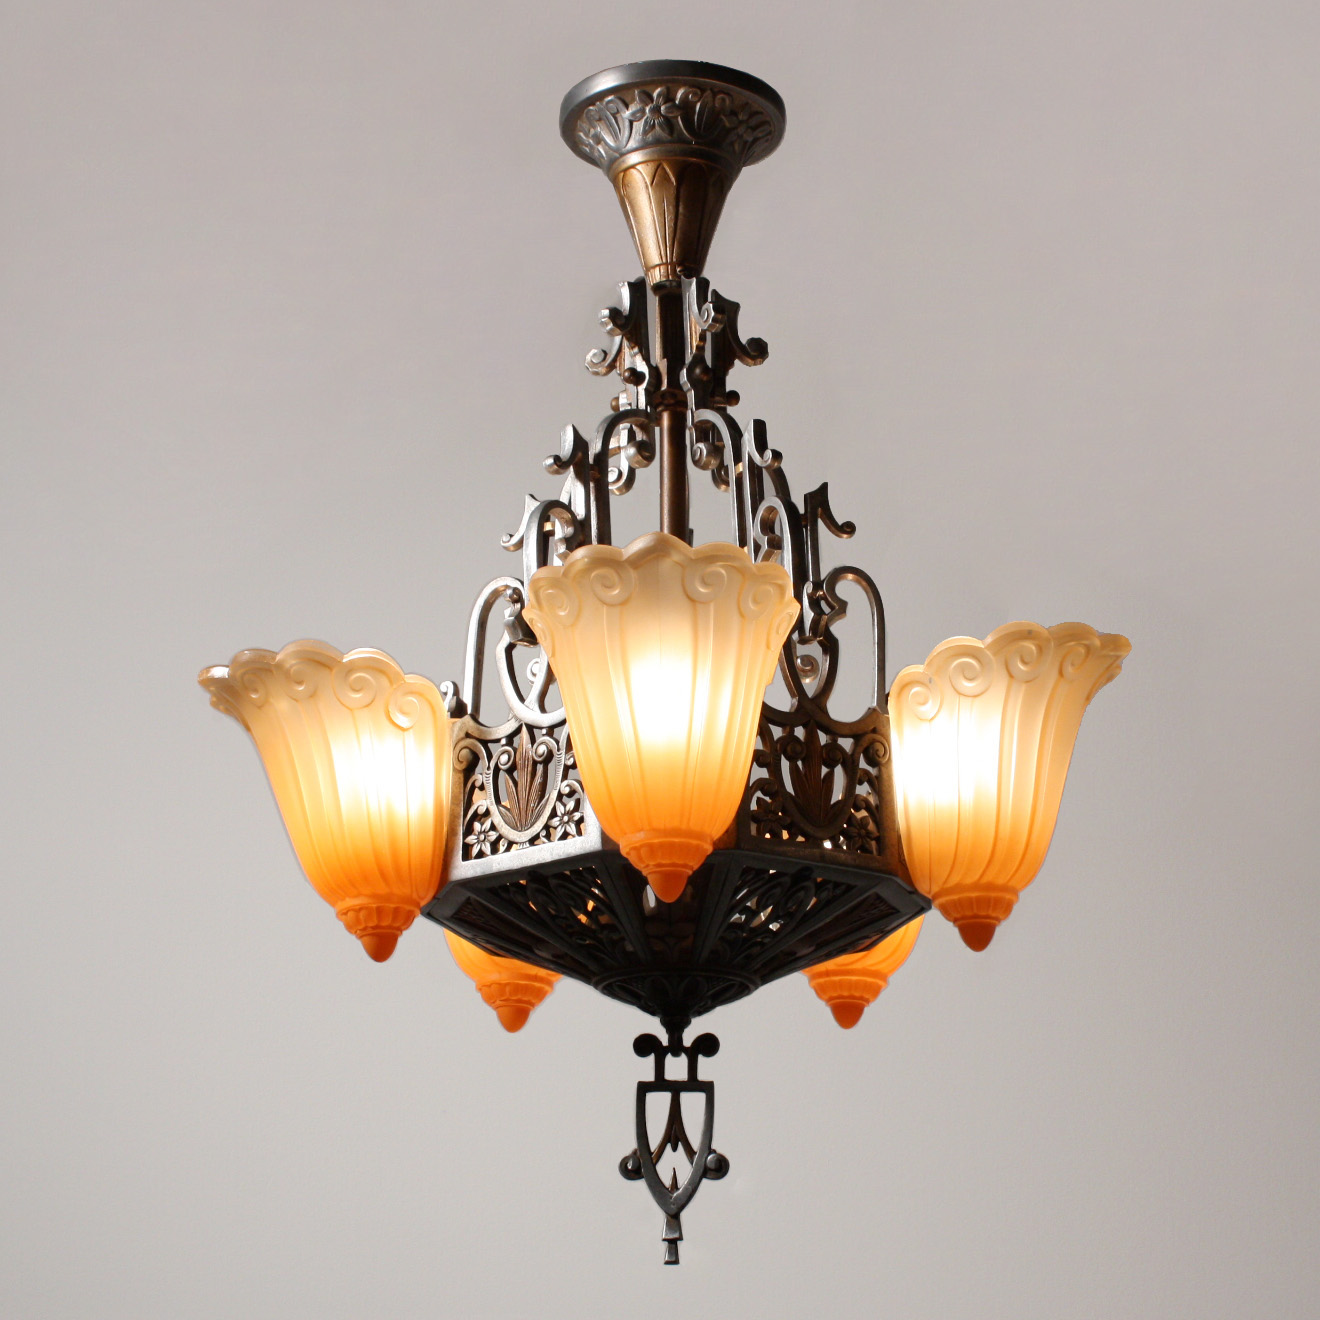 Stunning antique five light art deco slip shade chandelier by this is a fantastic antique art deco slip shade chandelier found in chicago c1930 in its original polychrome finish made by the lincoln company arubaitofo Choice Image